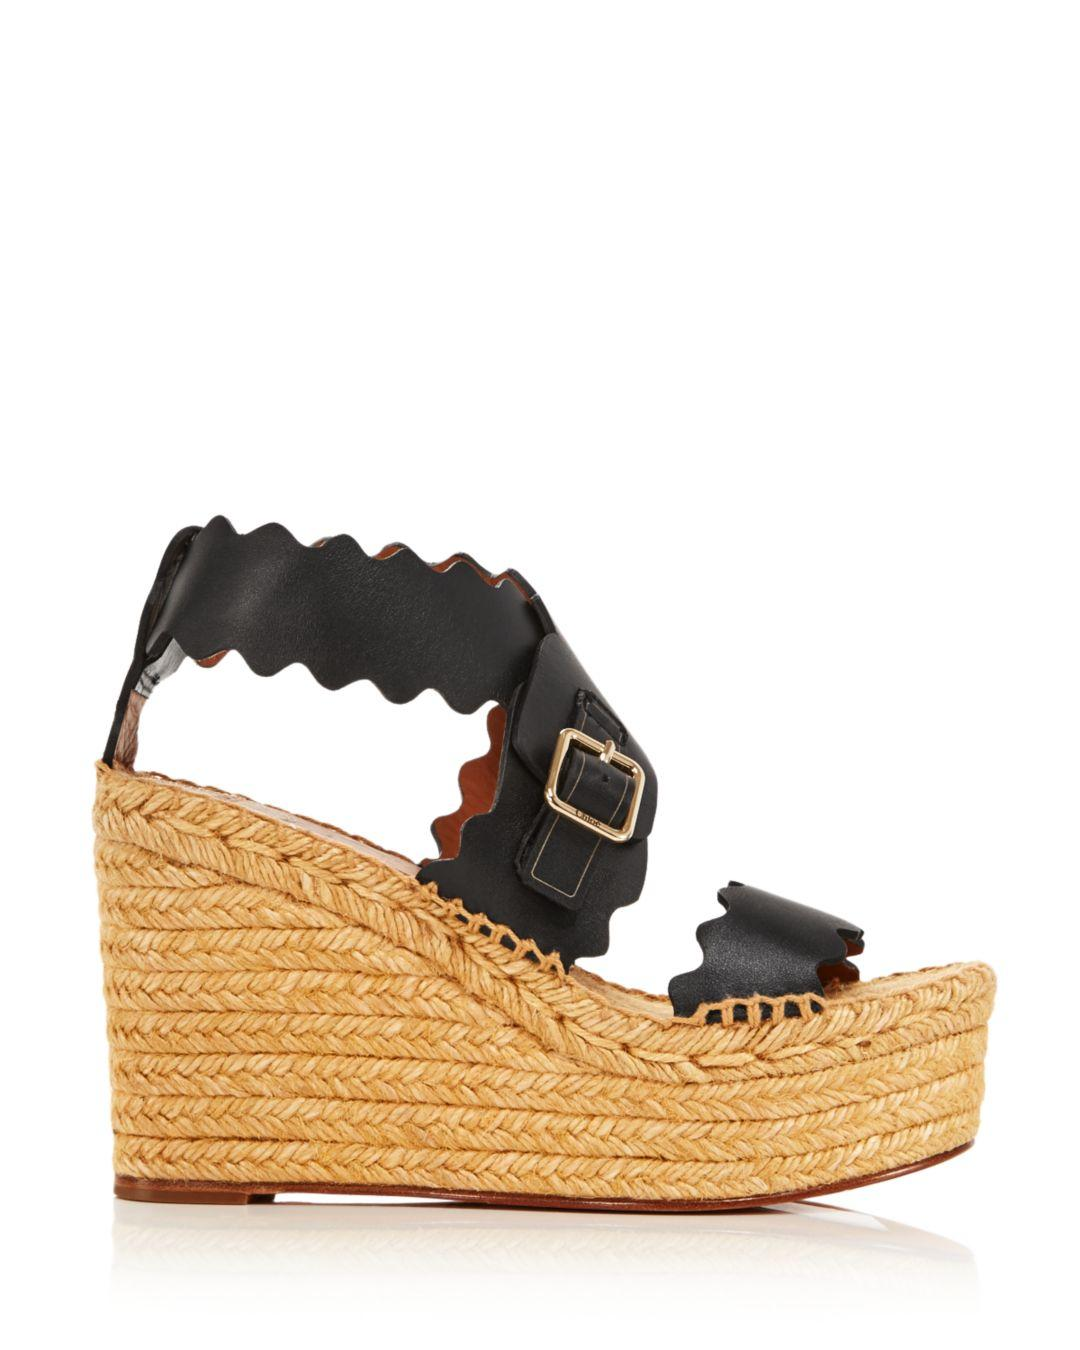 64a4bc85a1ea Chloé Women s Lauren Espadrille Wedge Sandals in Black - Lyst